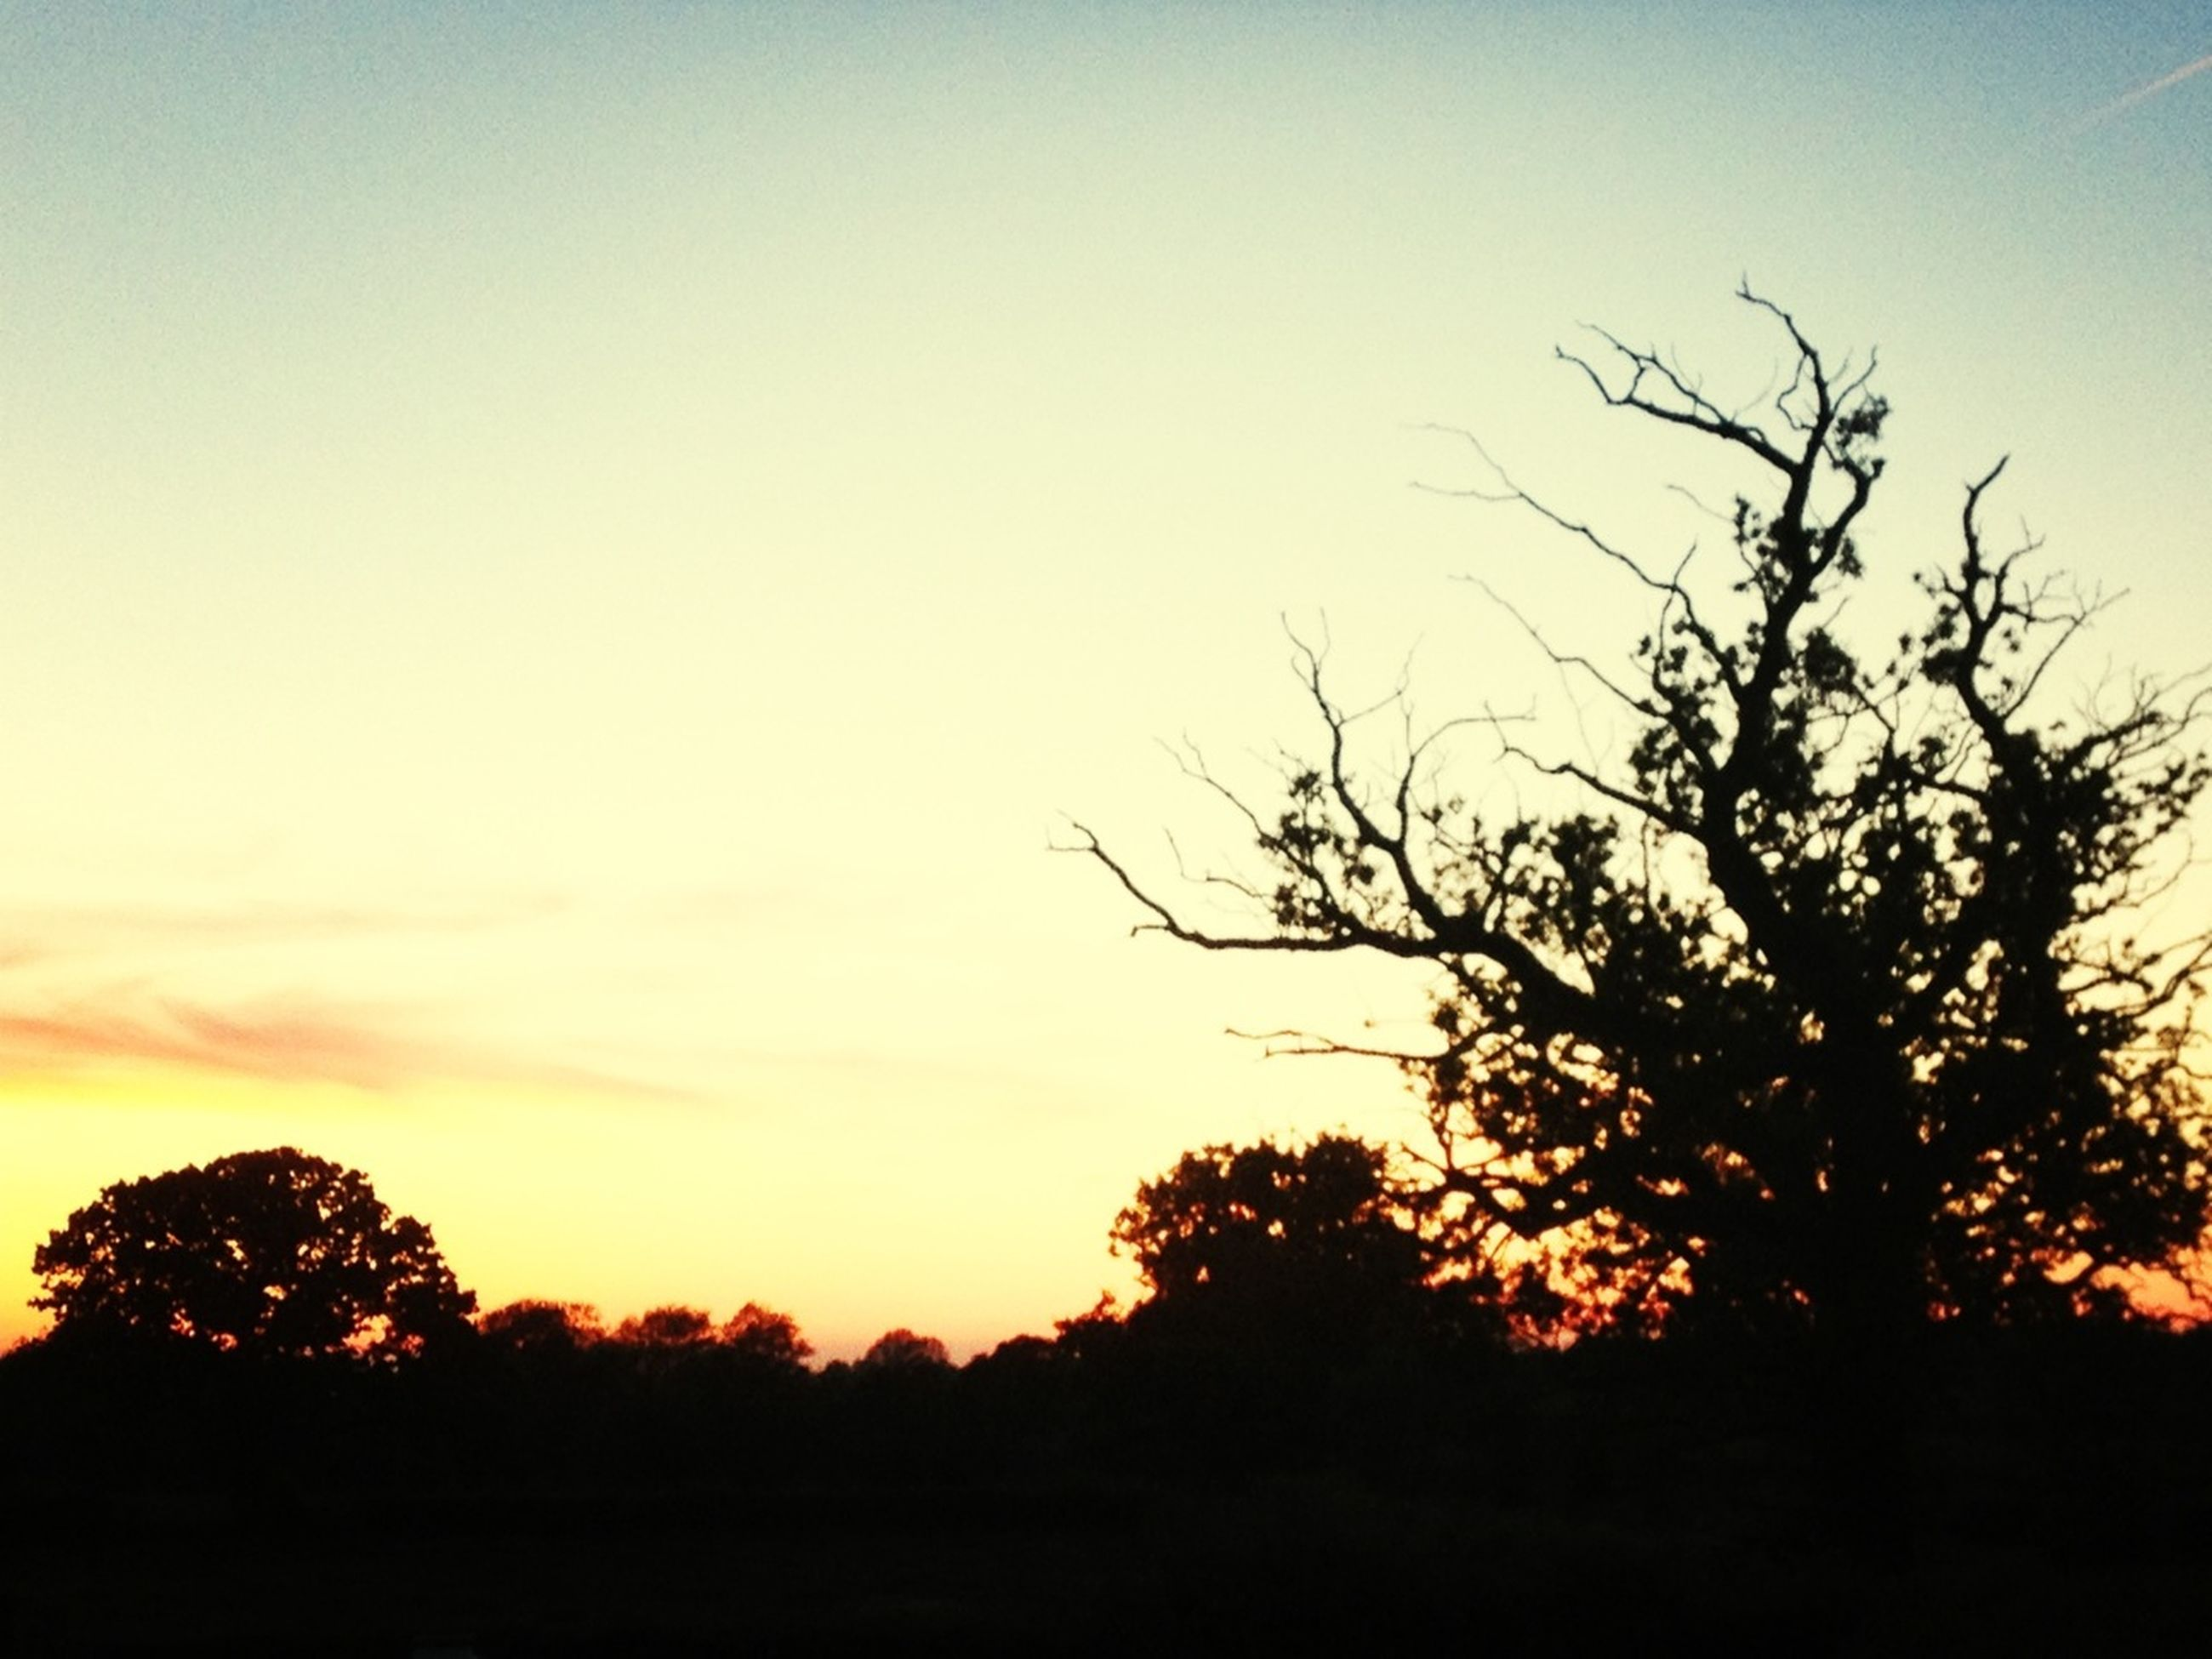 silhouette, sunset, tree, tranquility, tranquil scene, scenics, beauty in nature, bare tree, sky, nature, orange color, landscape, idyllic, branch, clear sky, copy space, dusk, growth, non-urban scene, outdoors